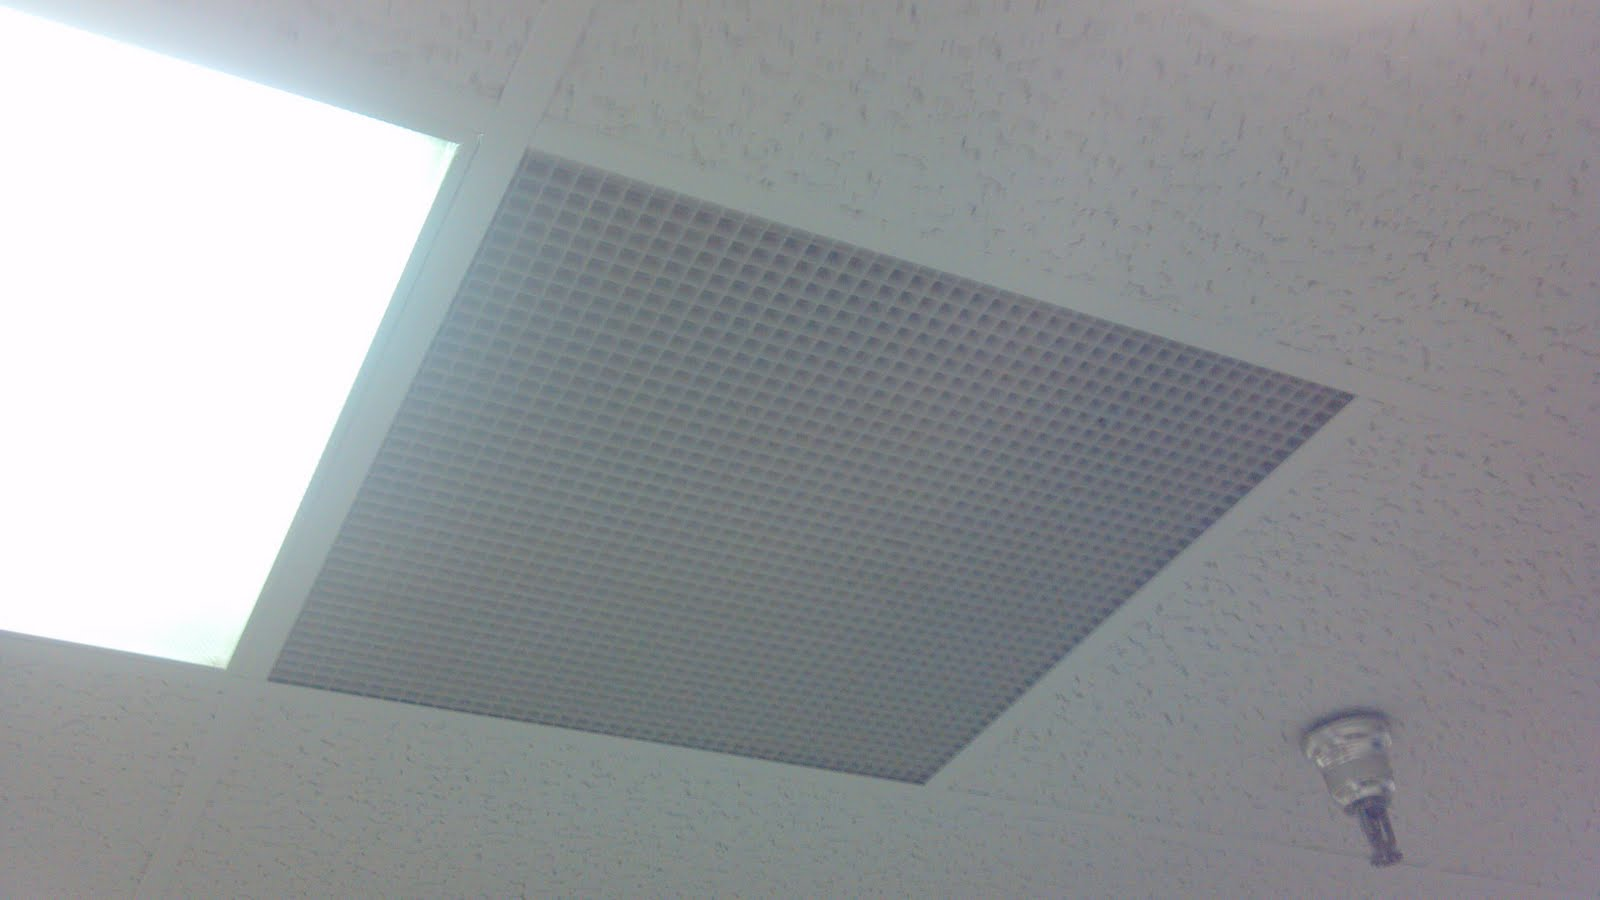 Lighted ceiling tiles